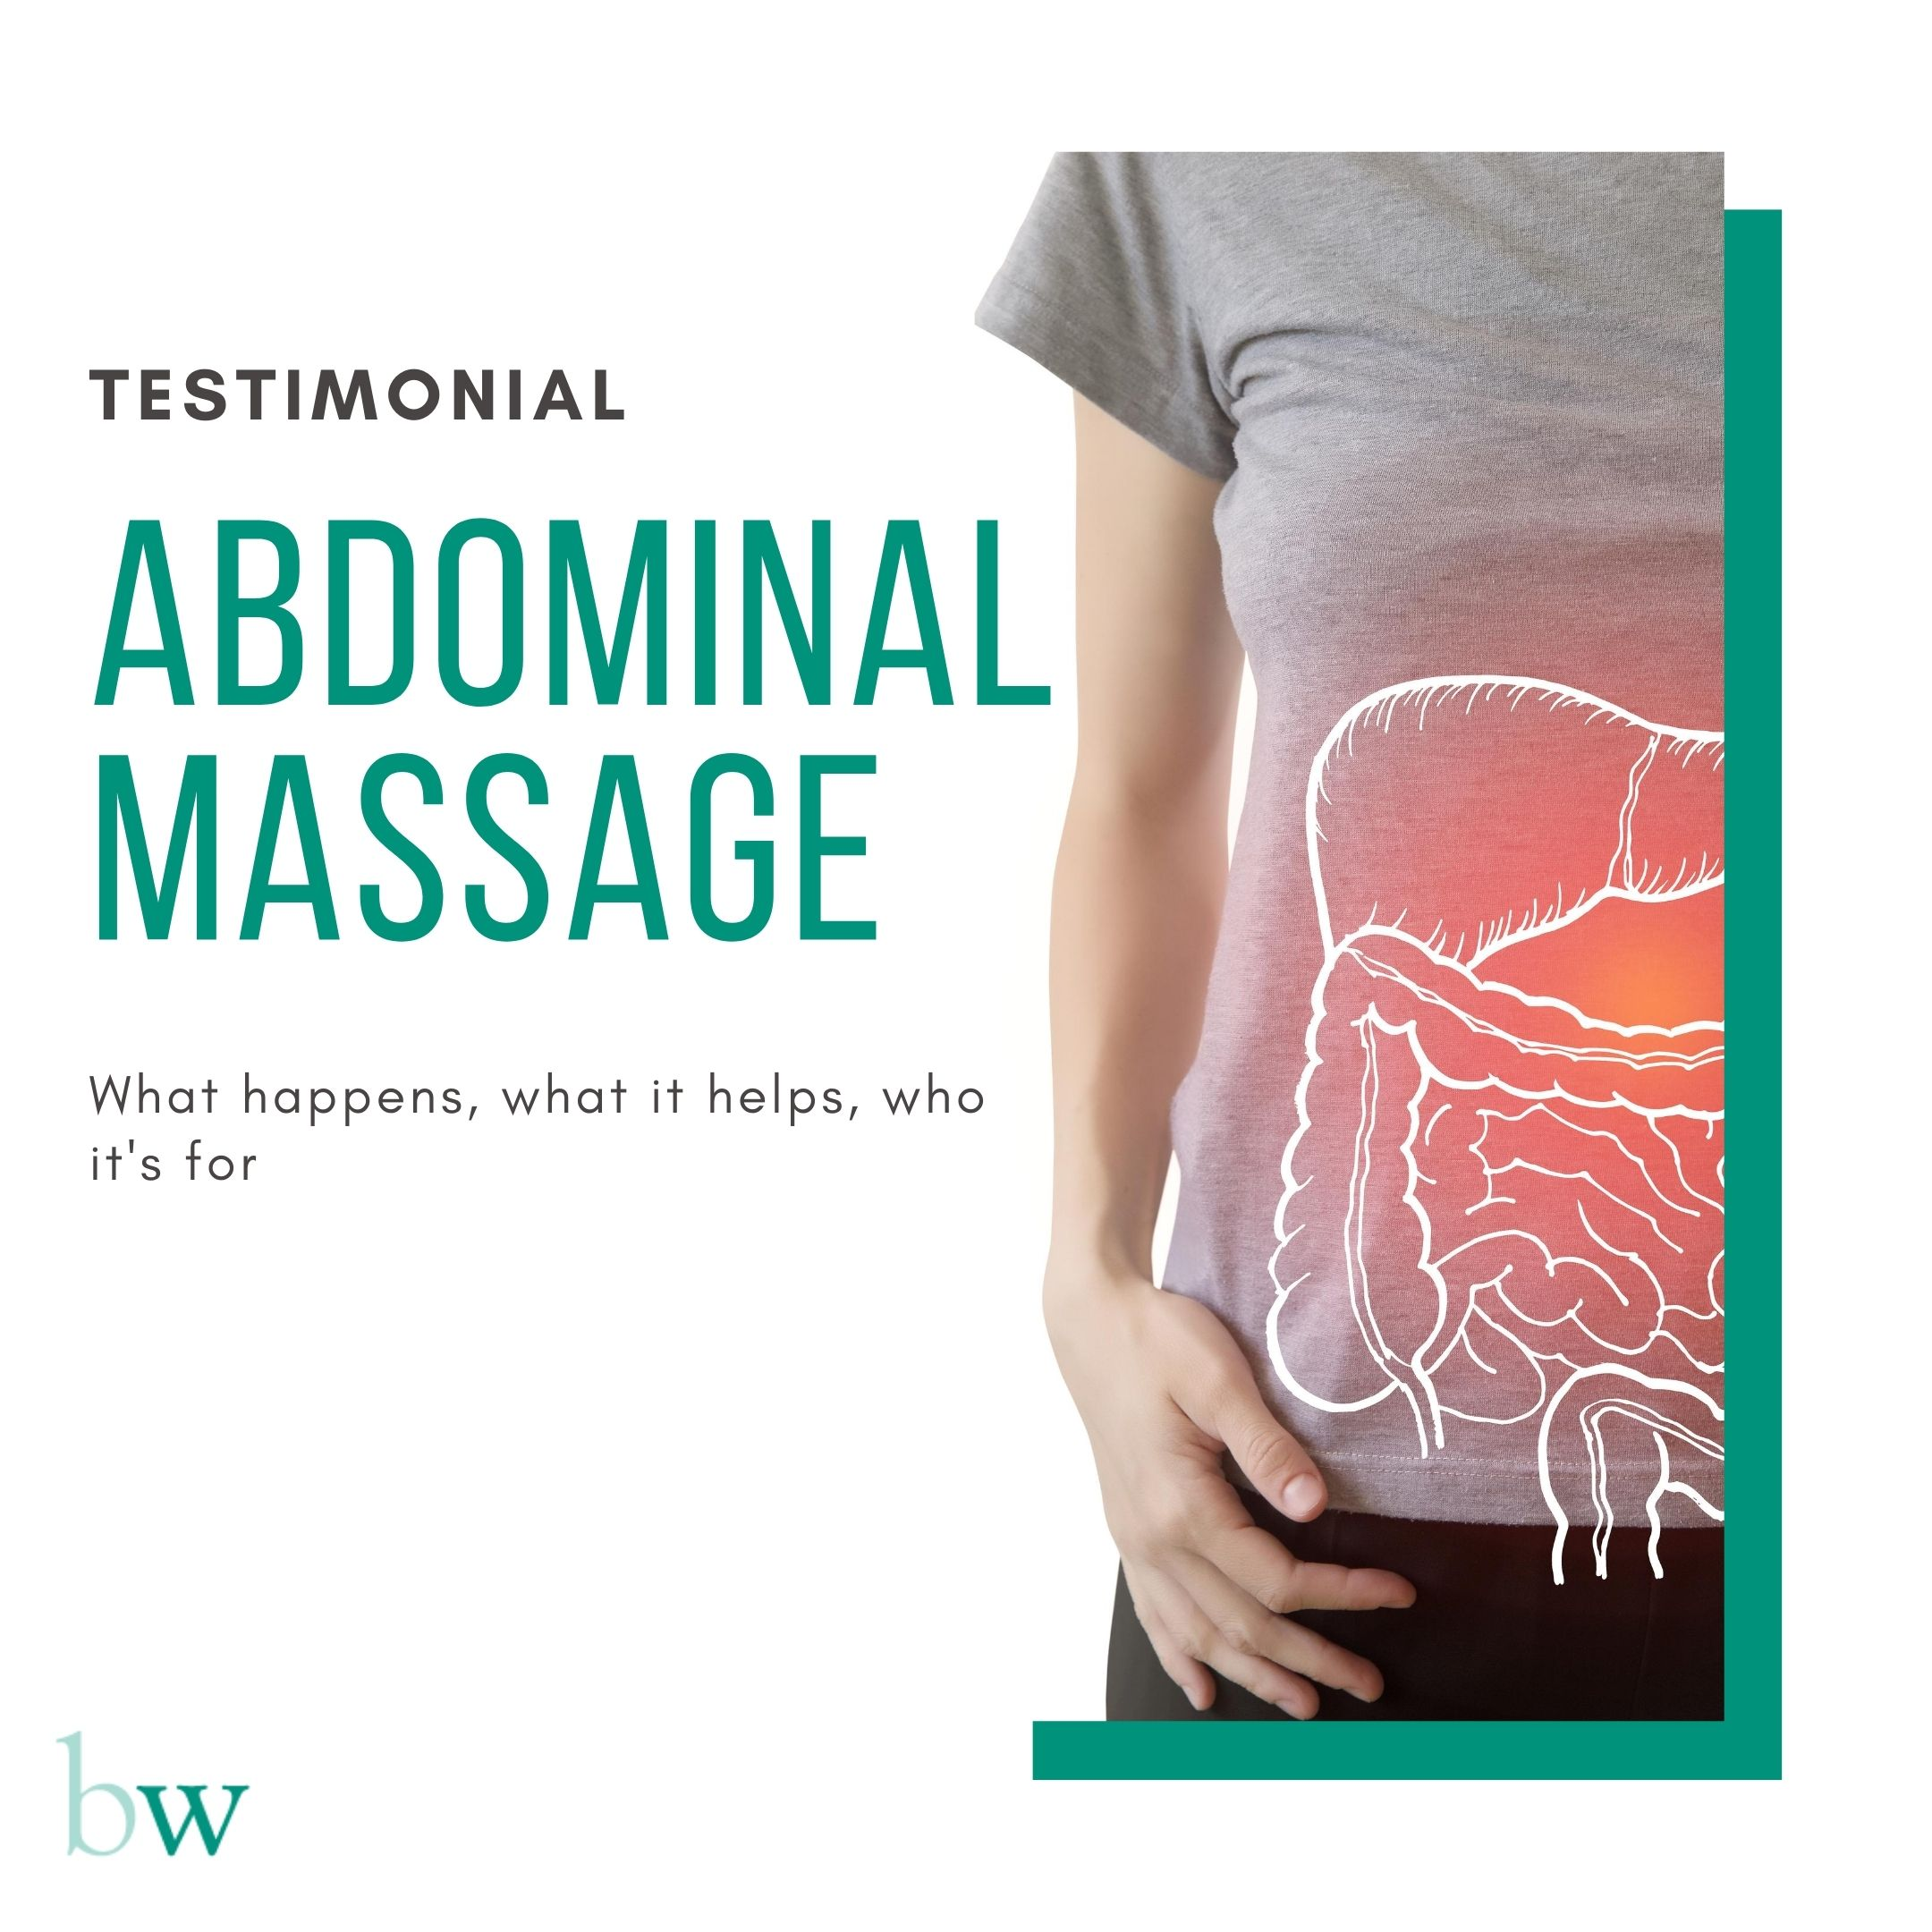 Abdominal Massage Testimonial at Bodyworks Clinic Marbella